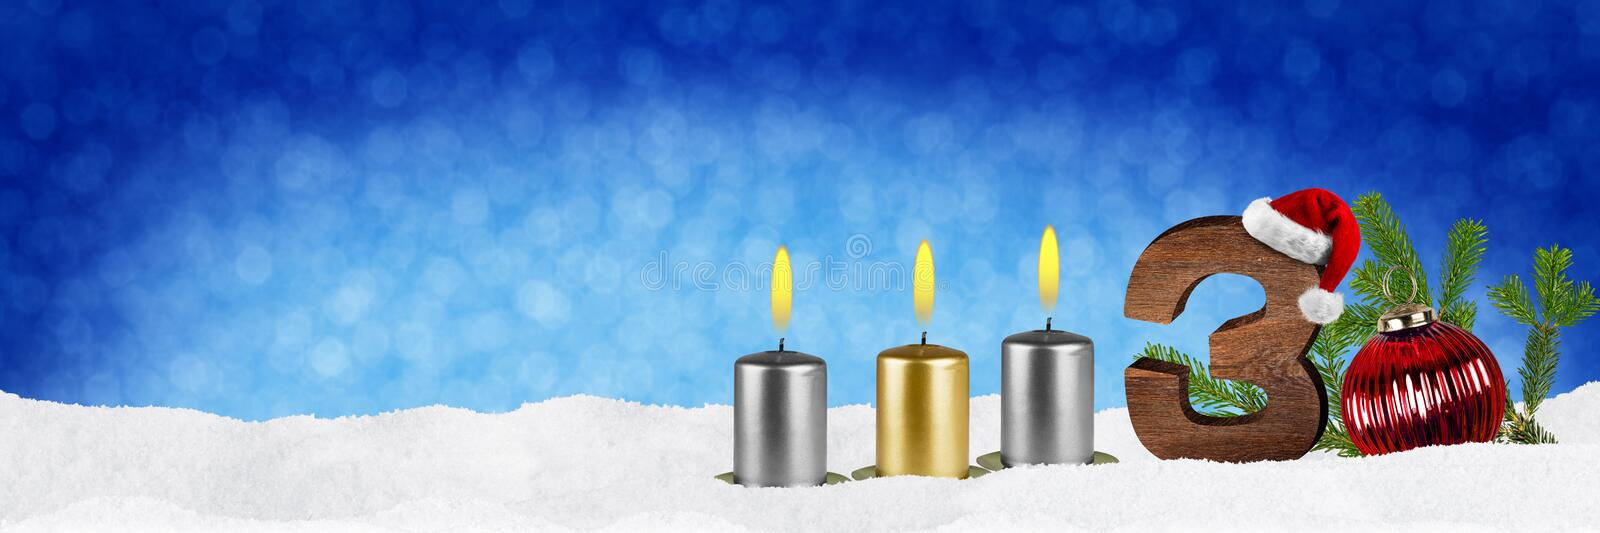 Third sunday of advent. Concept xmas panorama blue background with candles ball bauble snow and red silver decorated fir branches stock photography